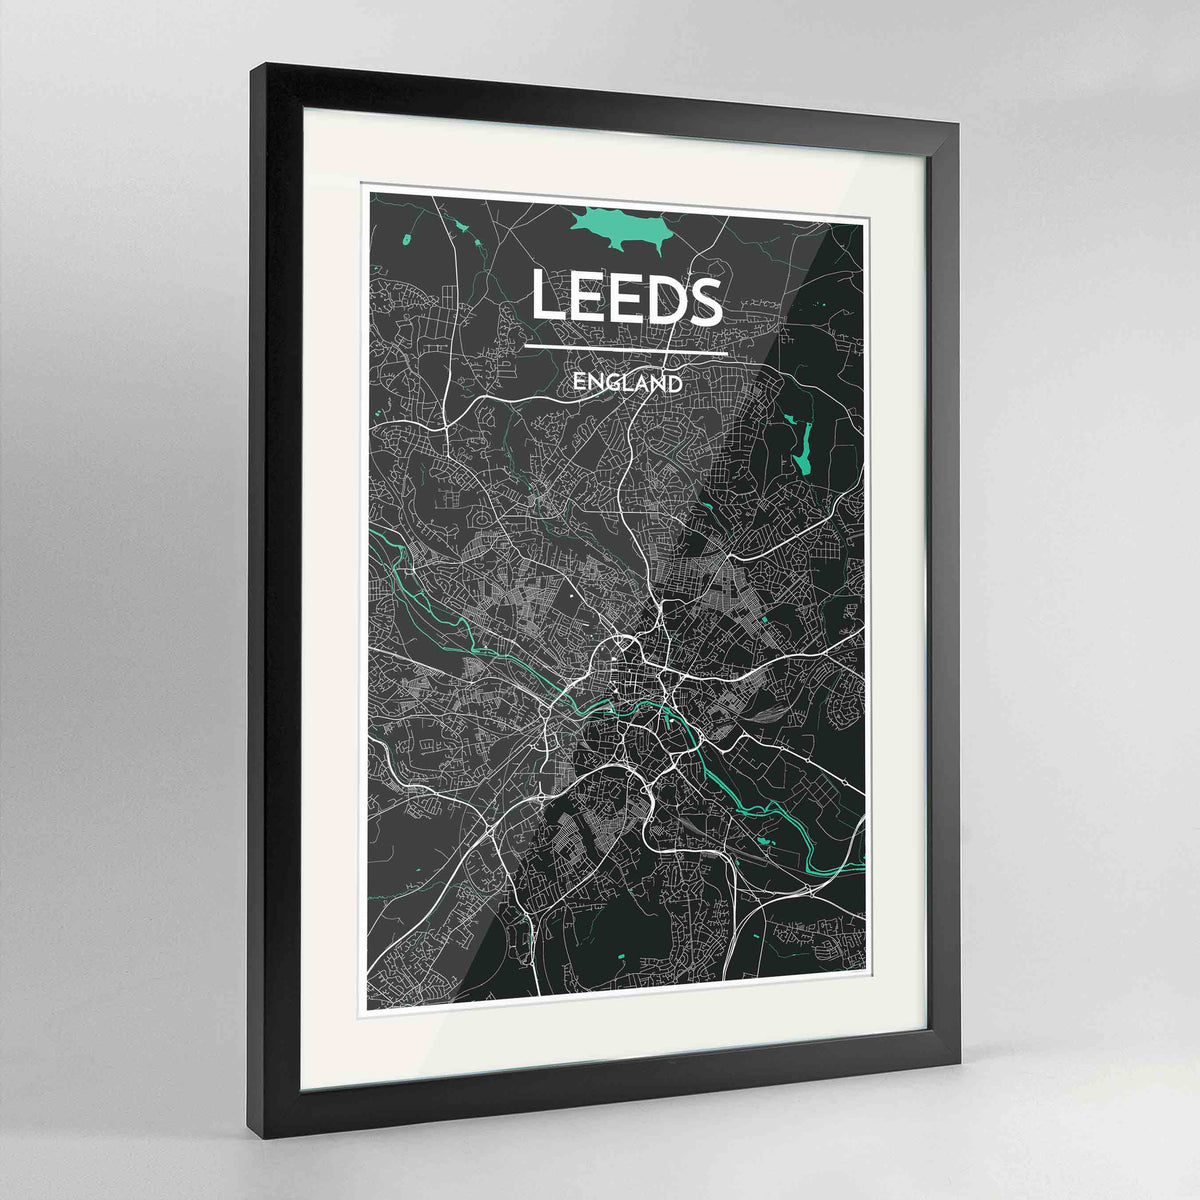 "Framed Leeds Map Art Print 24x36"" Contemporary Black frame Point Two Design Group"